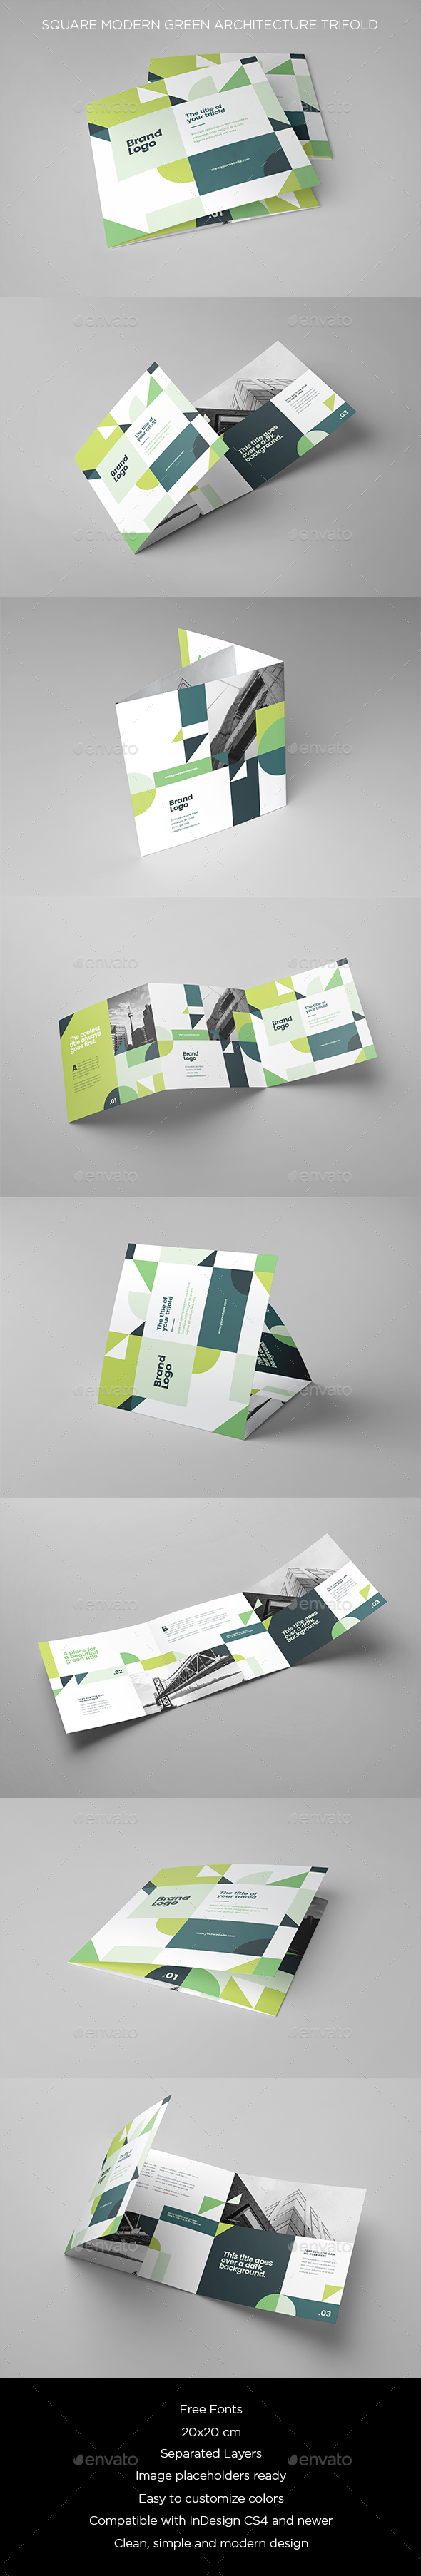 Square Modern Green Architecture Trifold - Brochures Print Templates